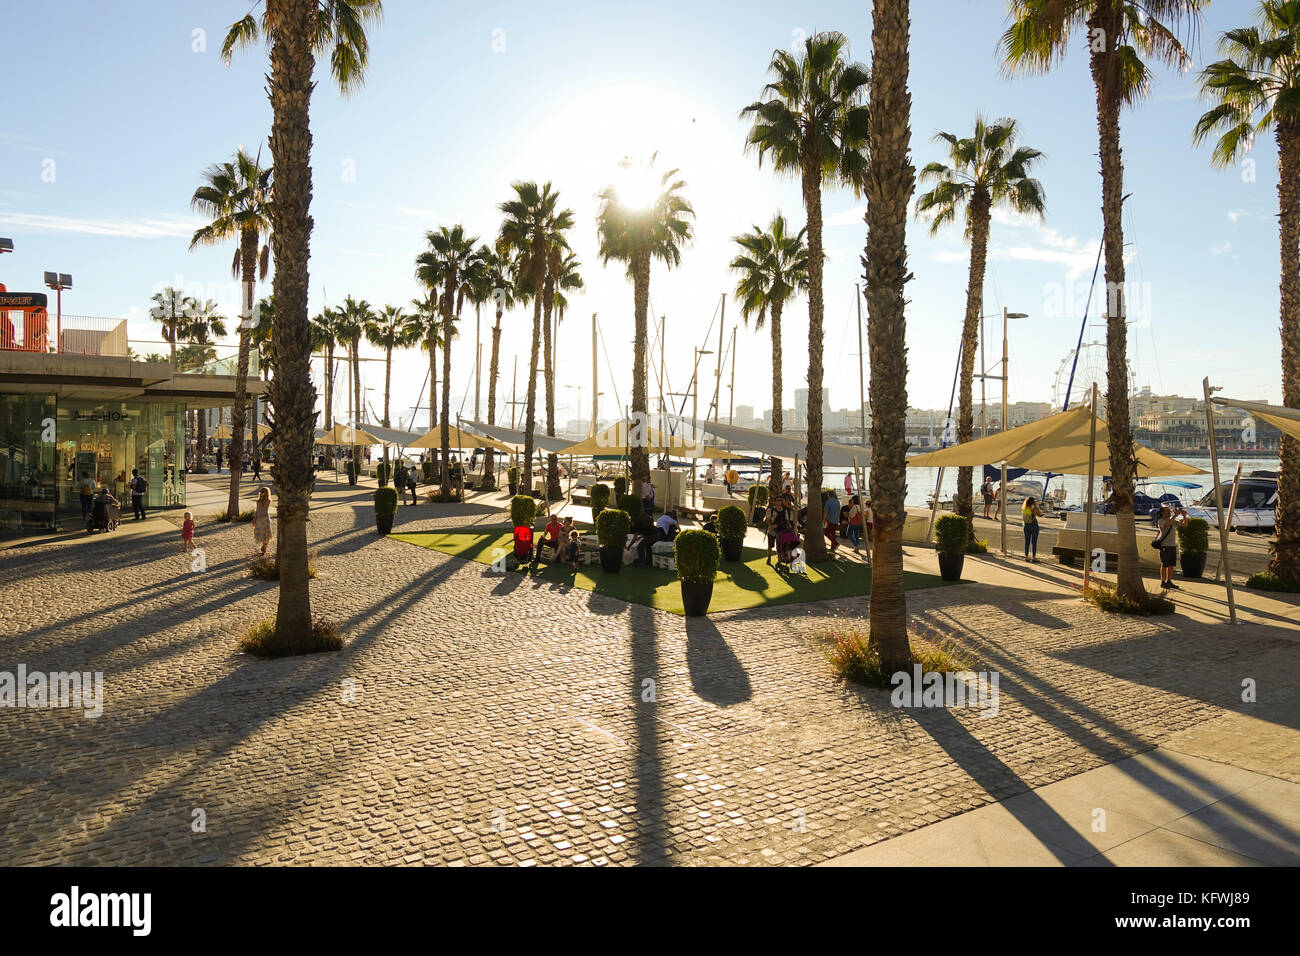 Palmeral stock photos palmeral stock images alamy - Stock uno alicante ...